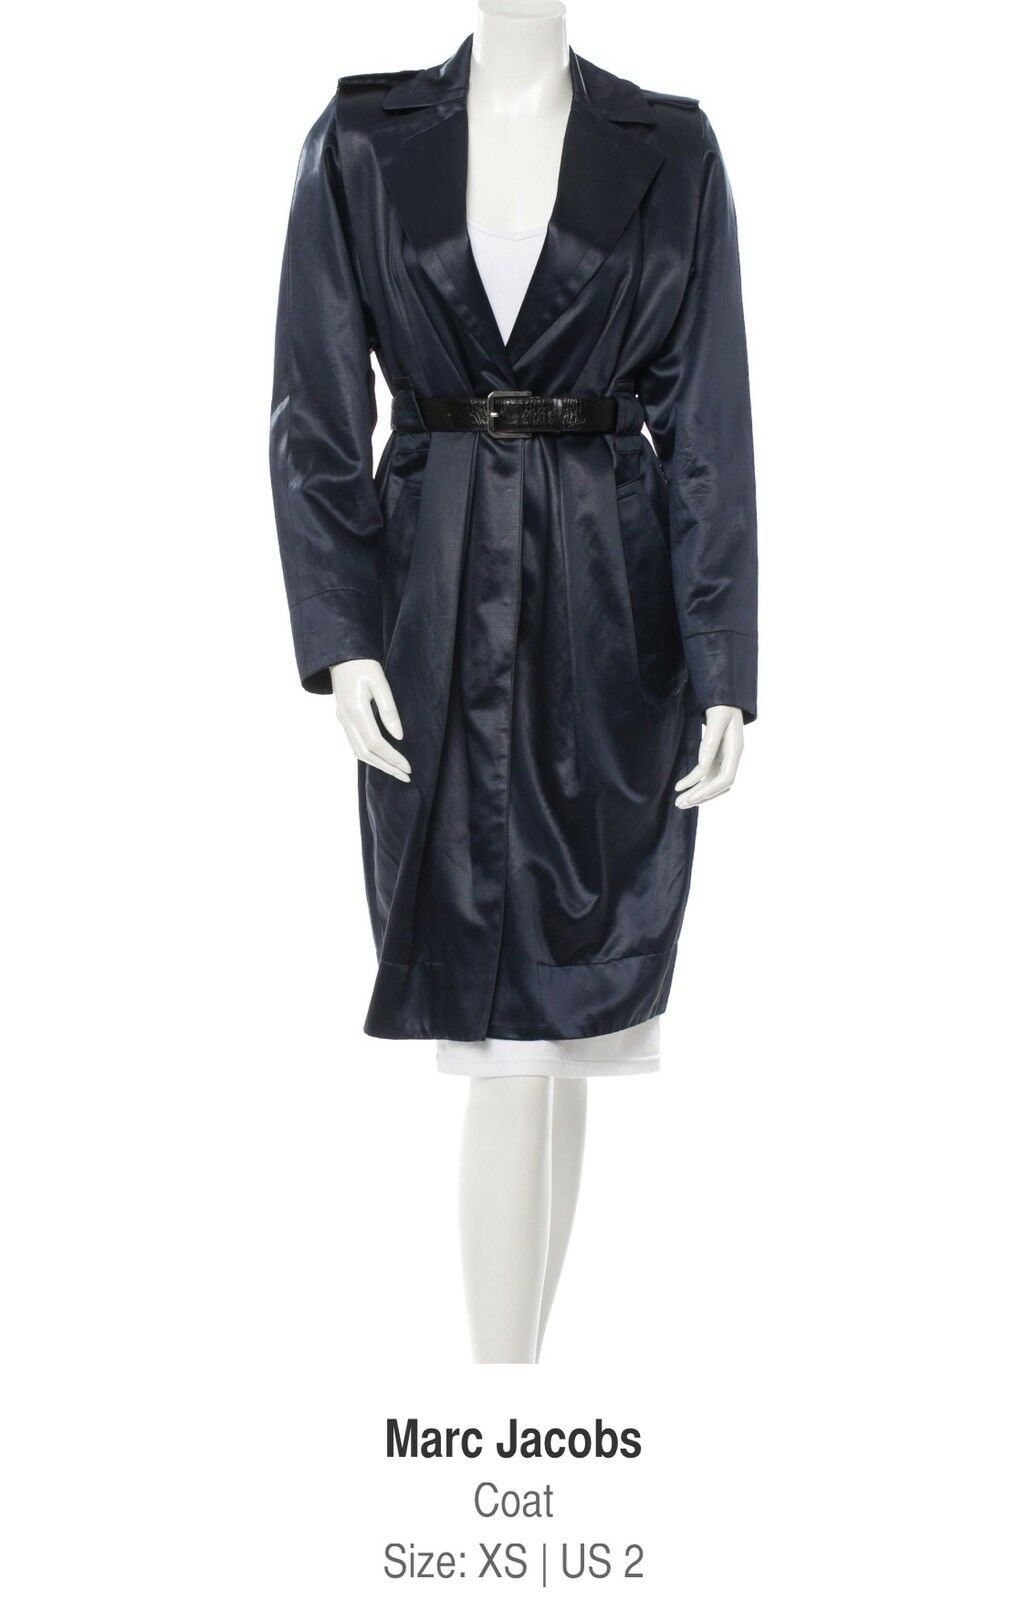 Marc Jacobs Satin Navy bluee Trench coat Size 2 XS Belt approx. Preowned